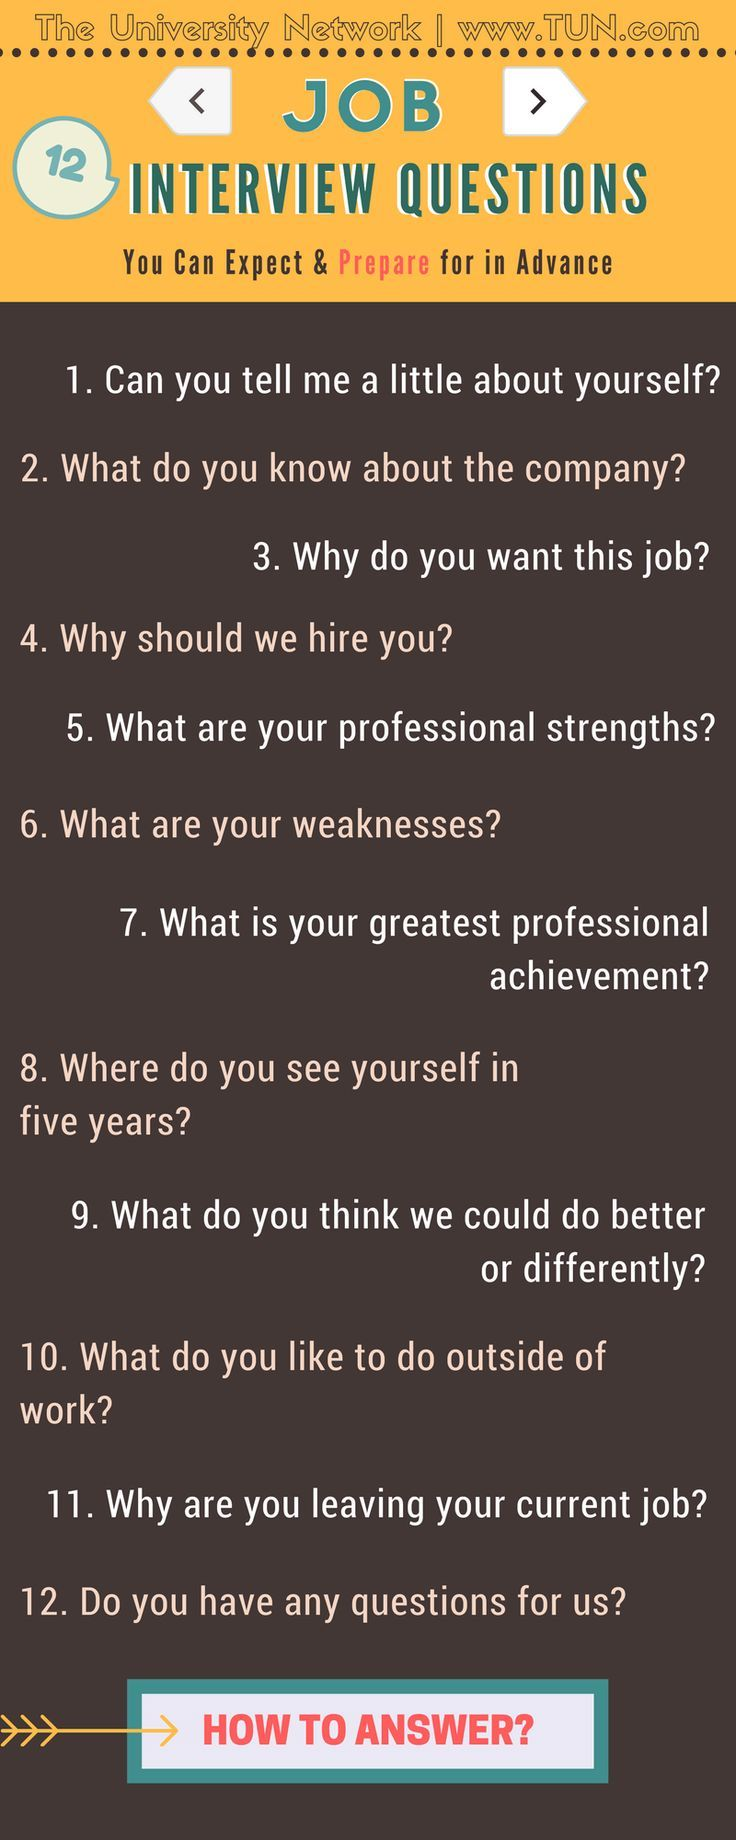 12 Typical Job Interview Questions How To Answer Them